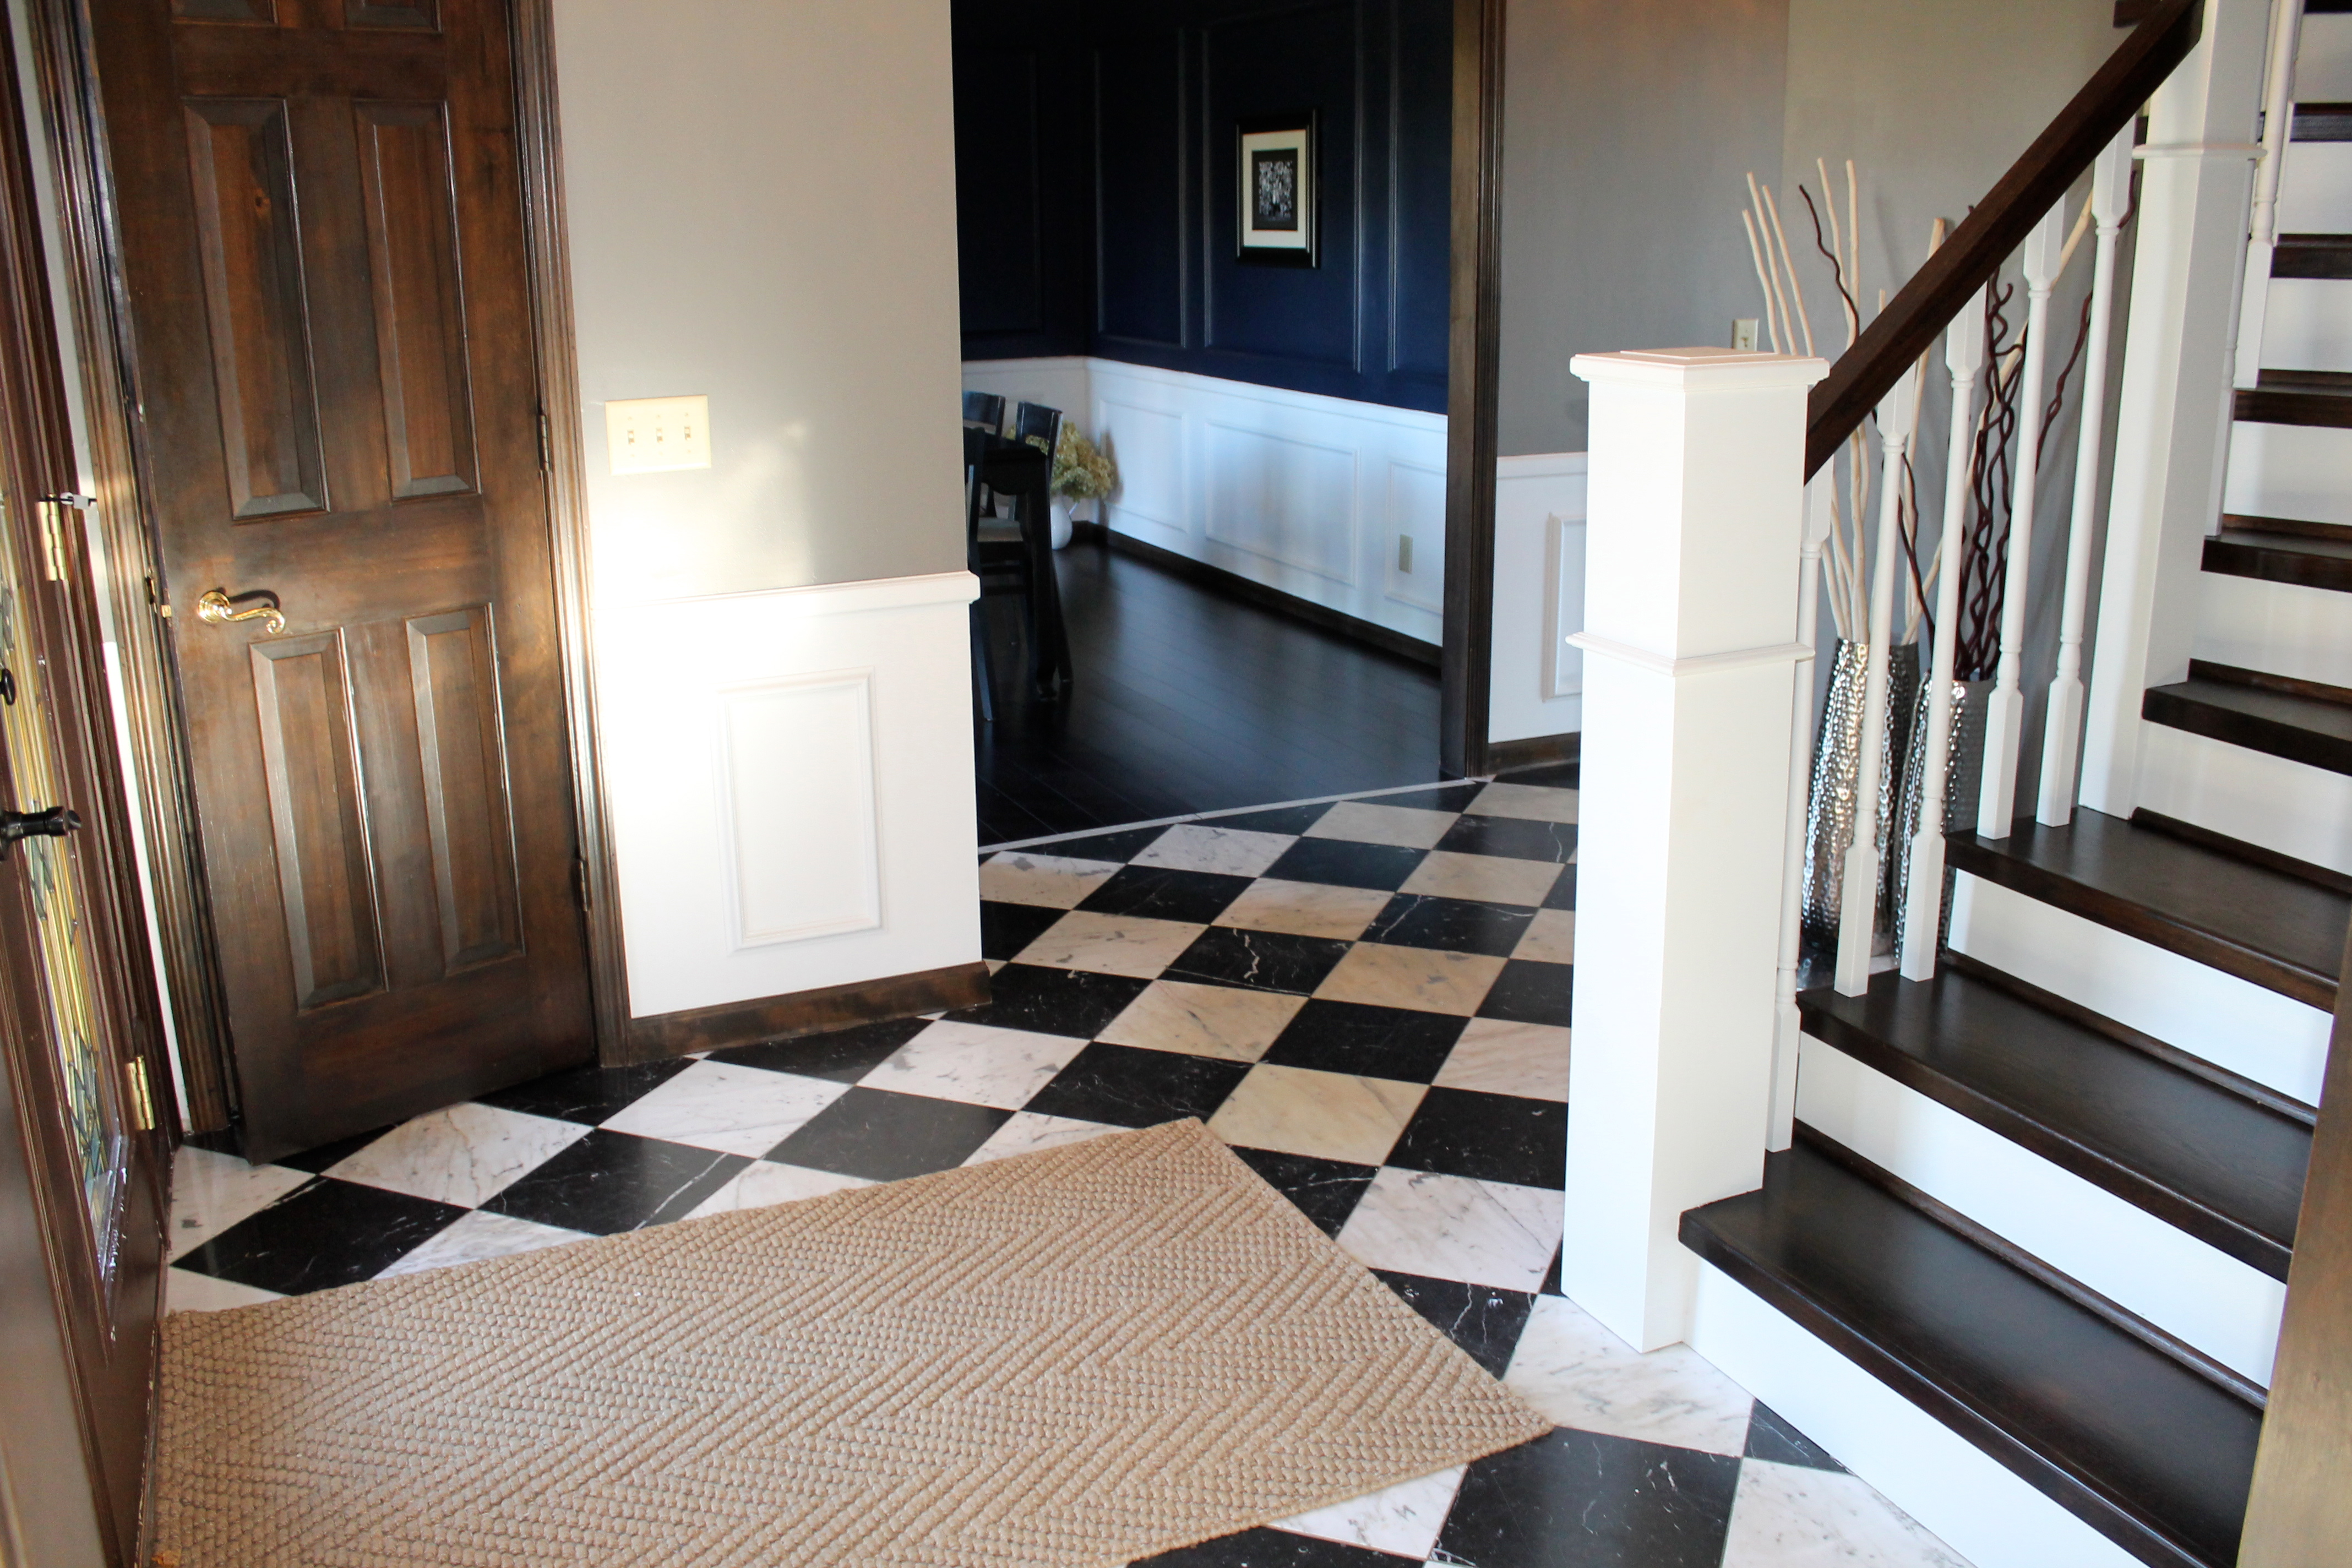 Tile Checker Entryway With Wood And White Curved Staircase    Construction2Style Via @Remodelaholic